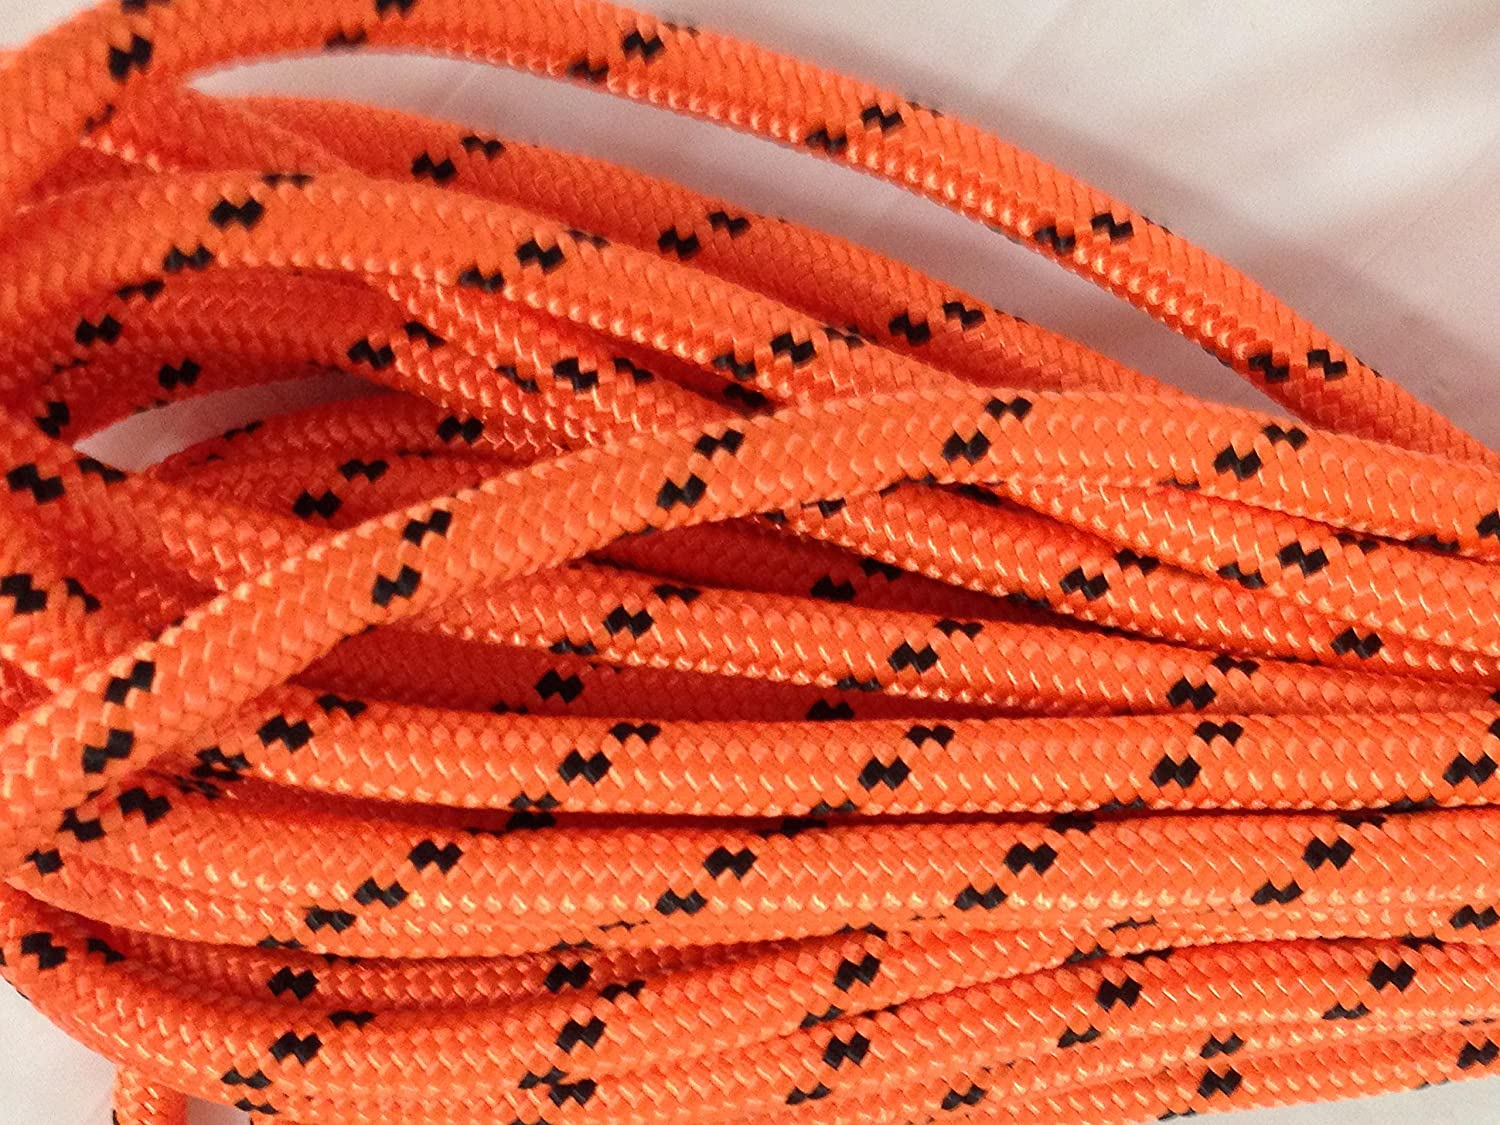 "1/2"" x 100' Arborist Rigging Double Braided Polyester Rope, Orange and Black"